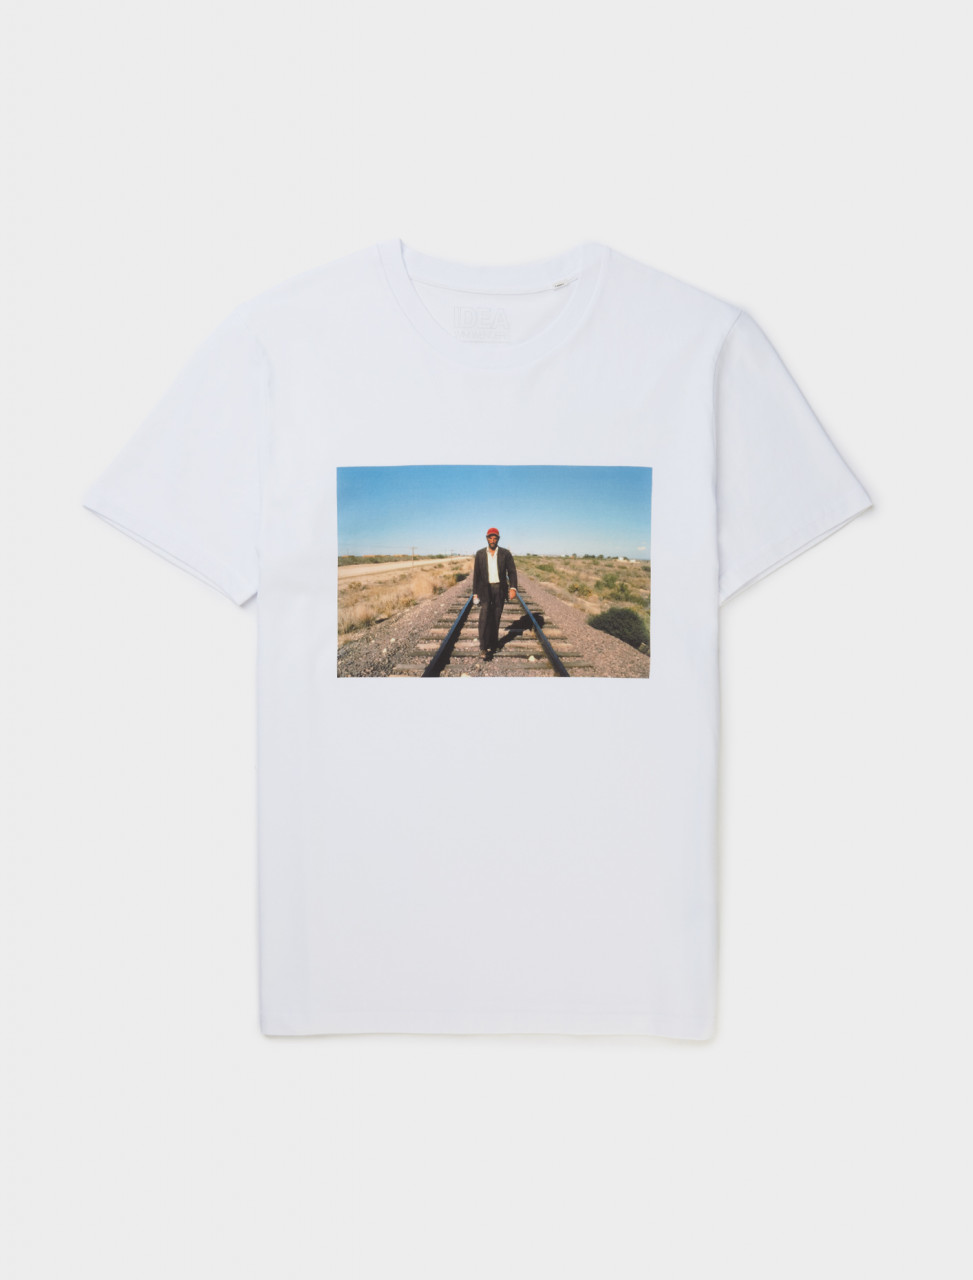 IDEA Books ltd Wim Wenders PARIS, TEXAS Harry Dean Stanton Tee Front